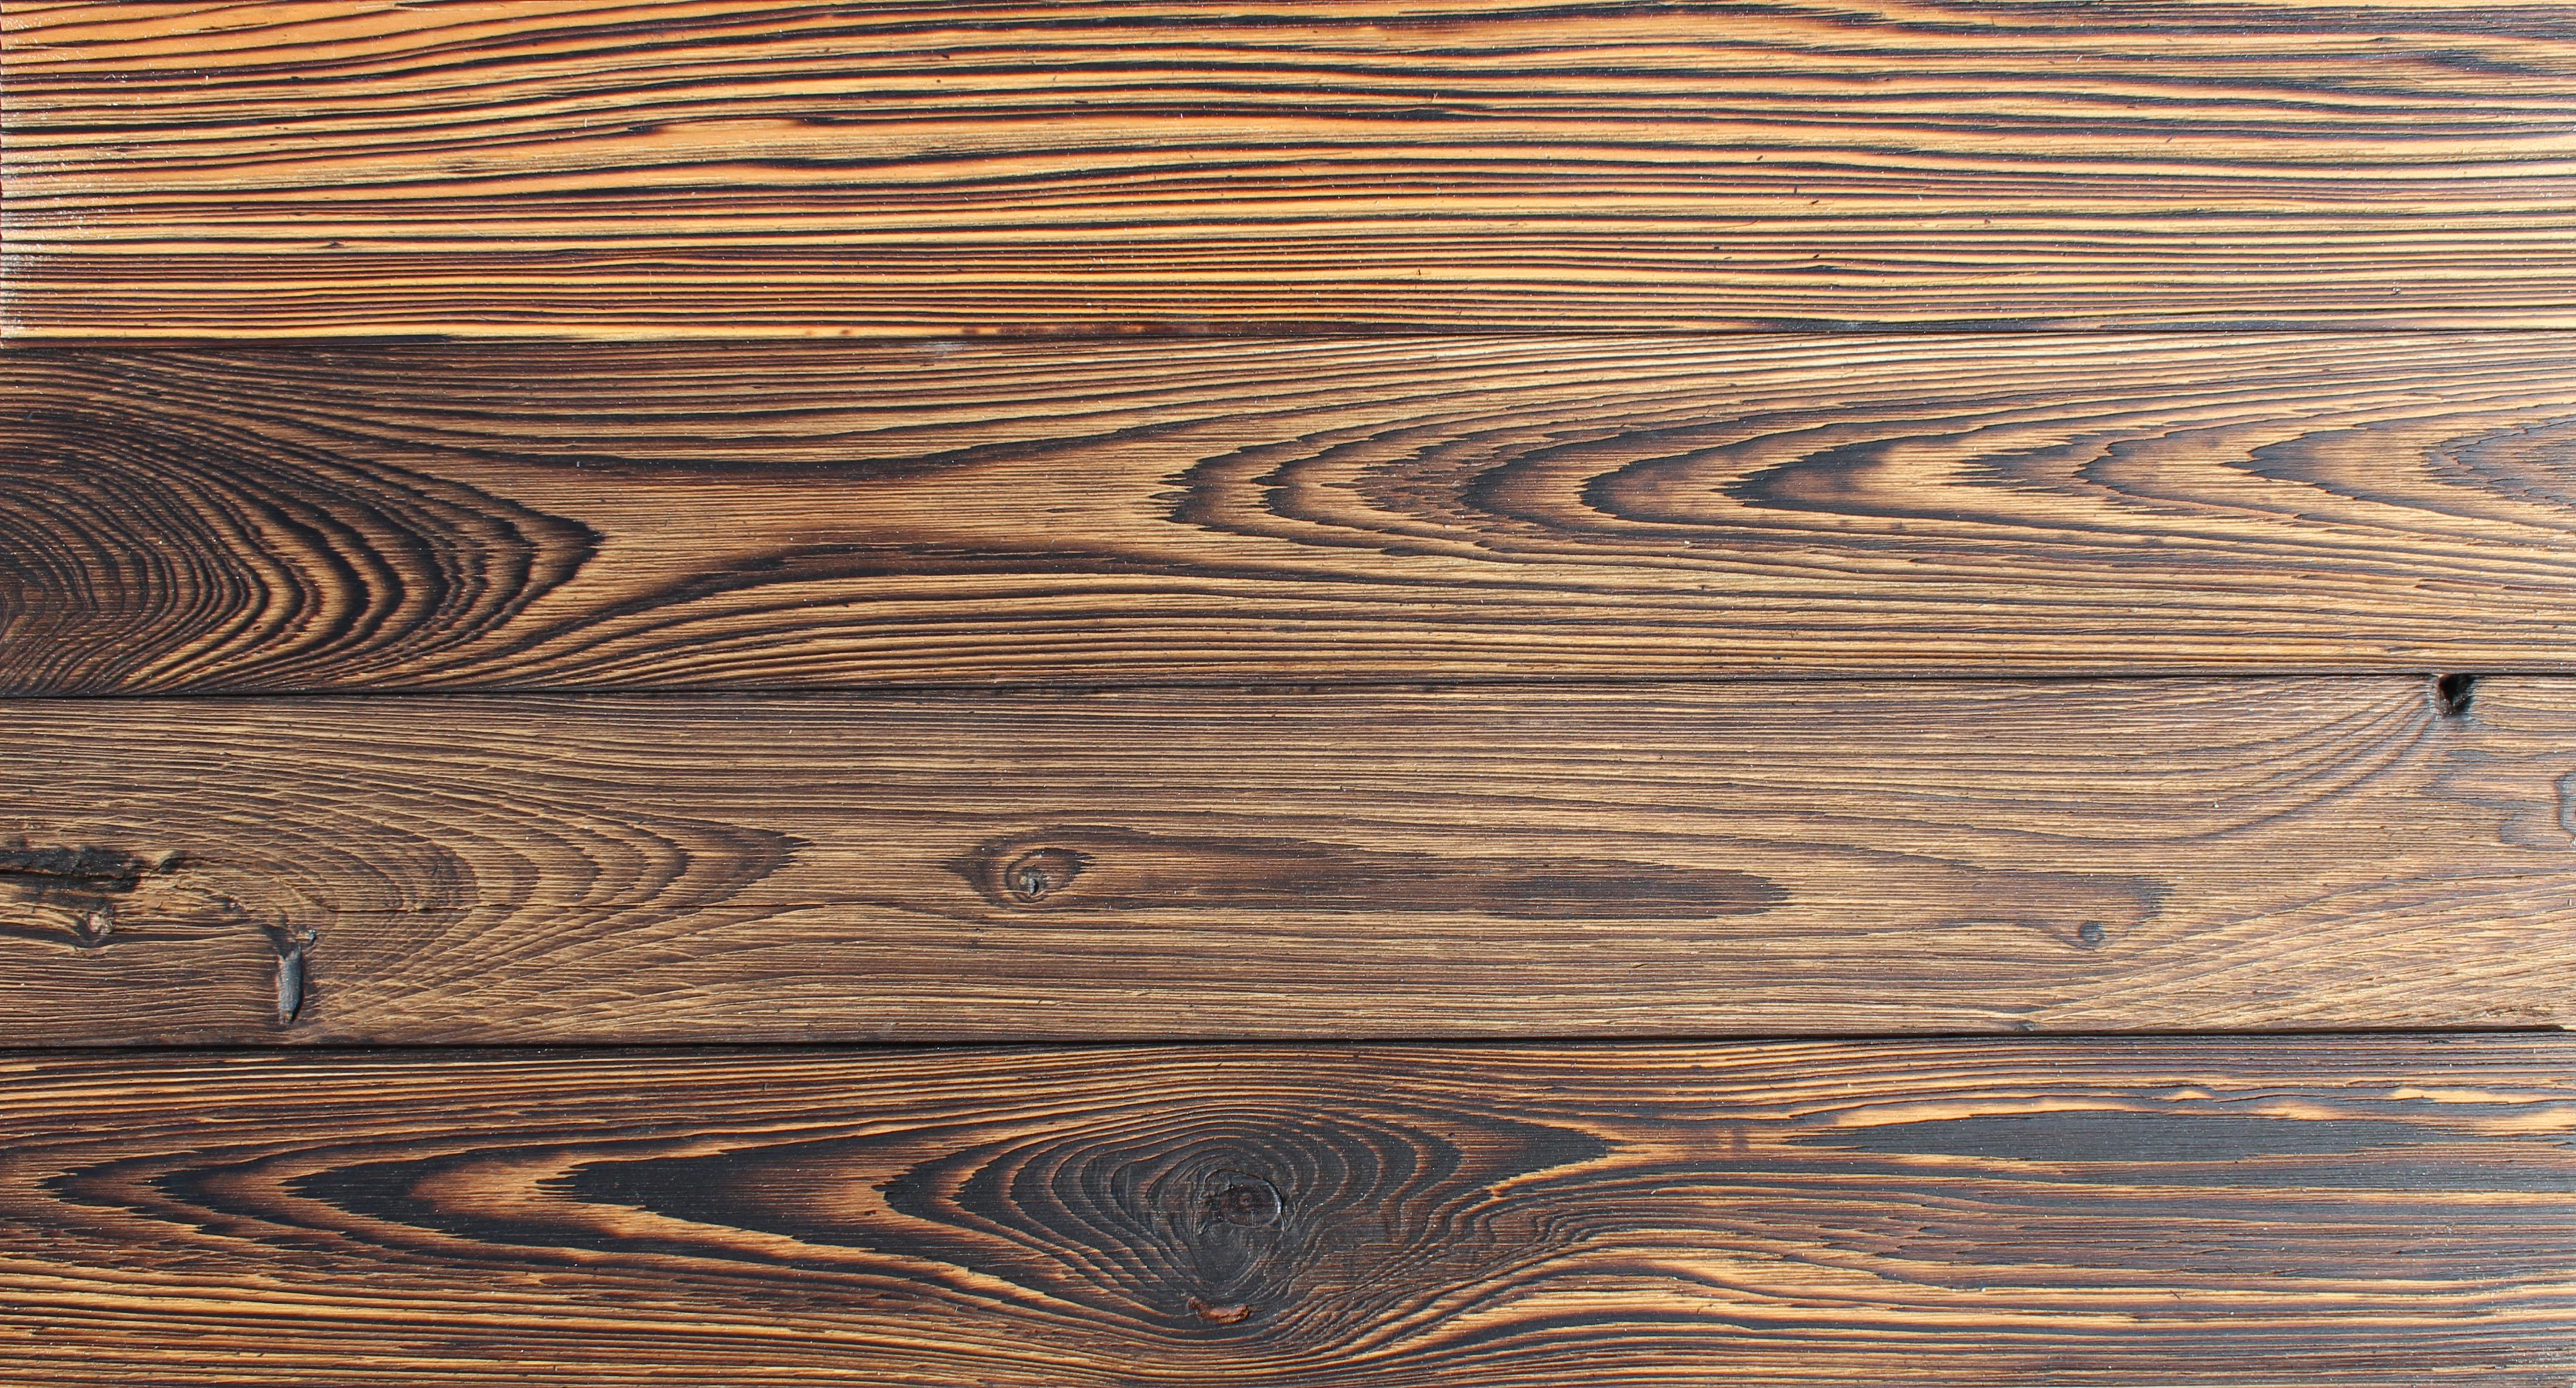 TAIYO SPECIES cypress FINISH burned brushed and finished with